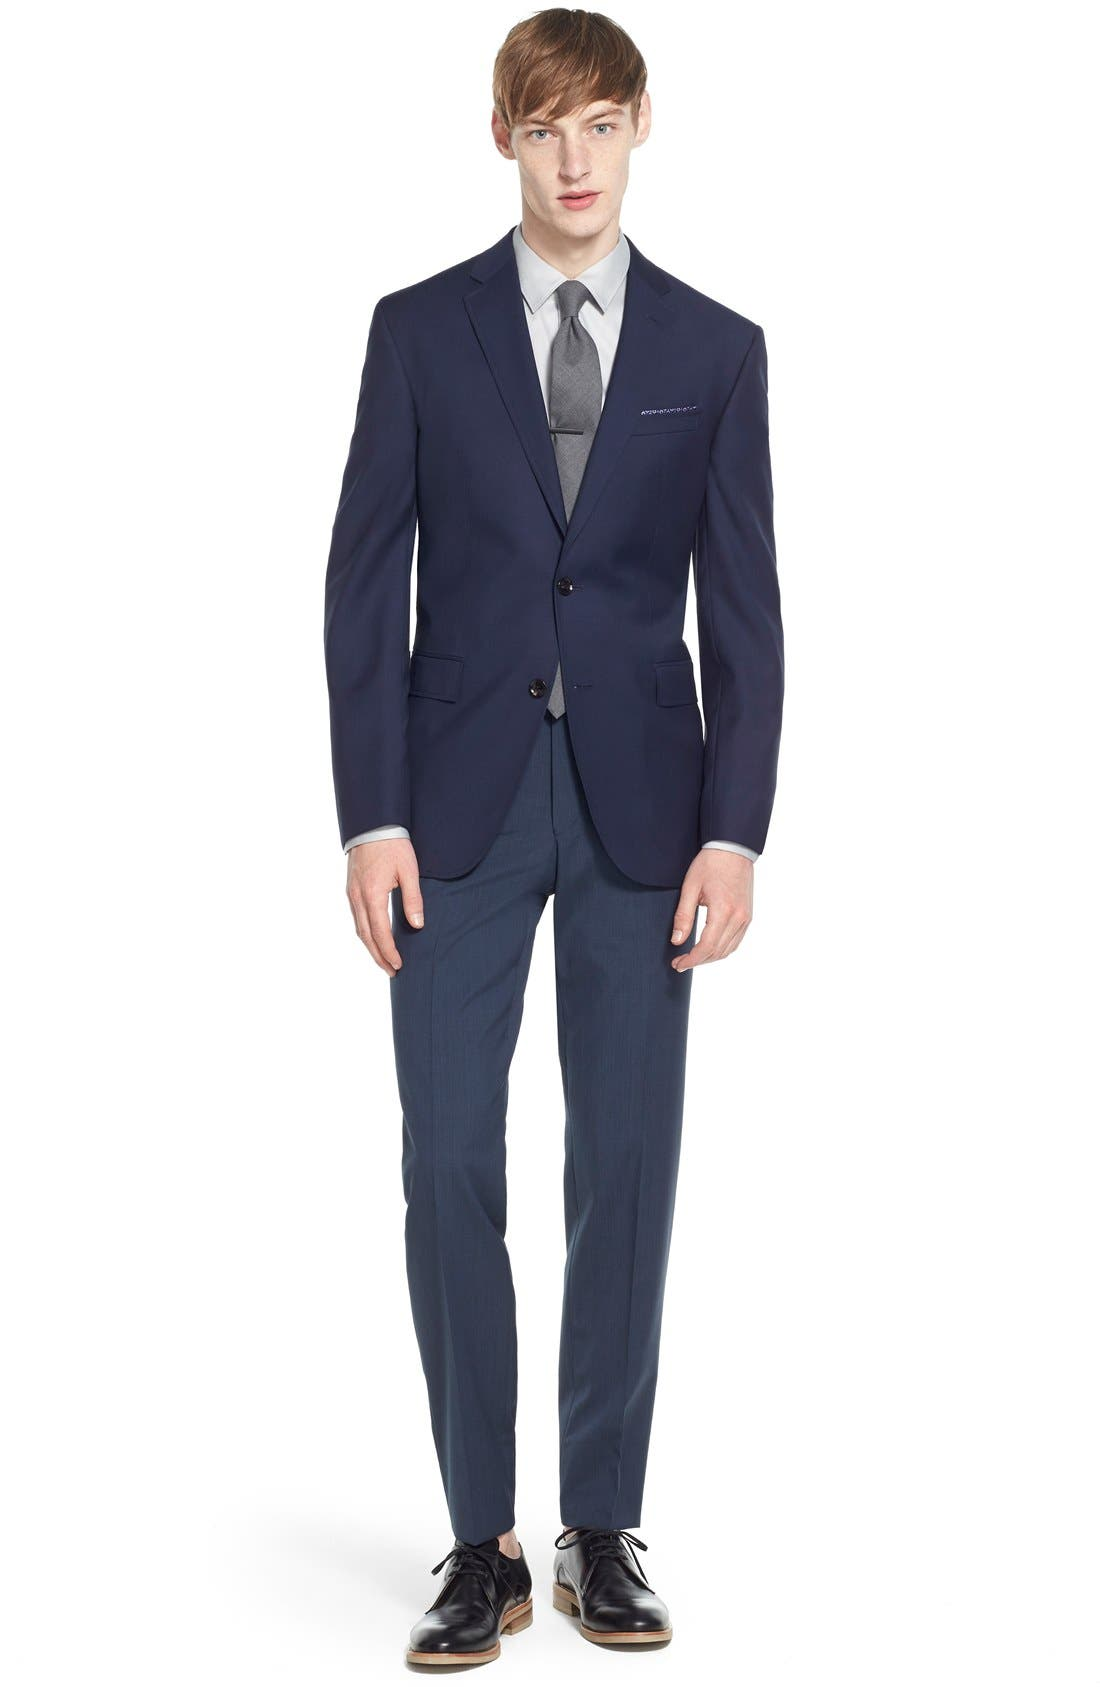 Trevi Trim Fit Wool Blazer,                             Alternate thumbnail 7, color,                             Navy